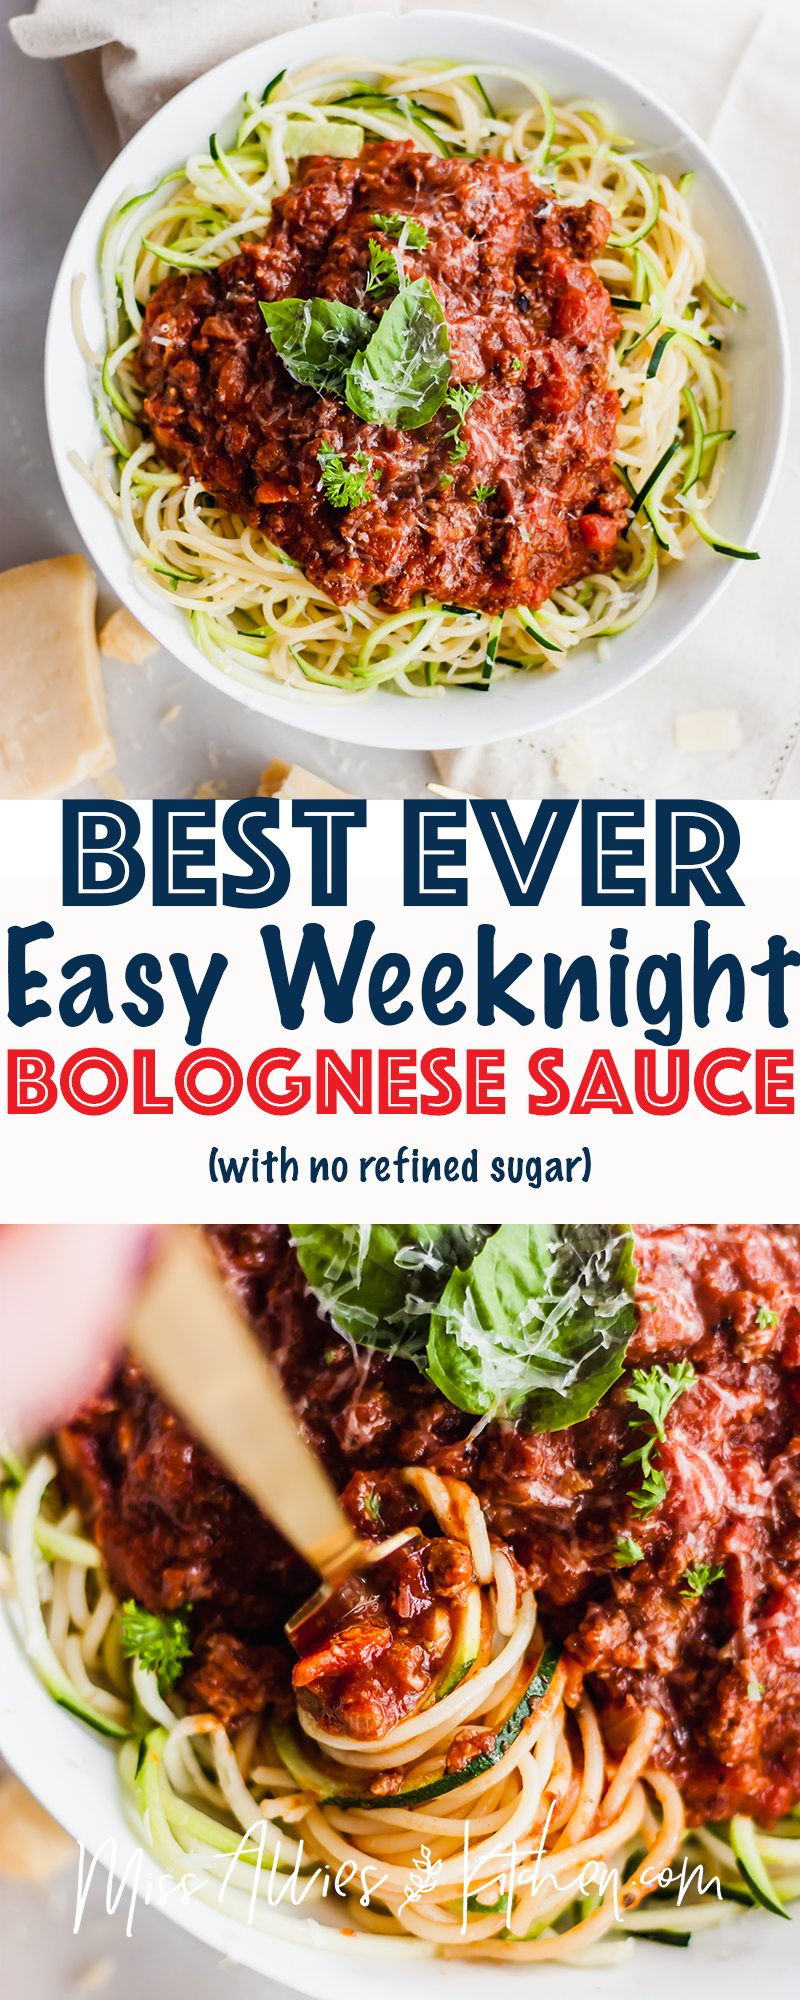 Best Ever Easy Weeknight Bolognese Sauce